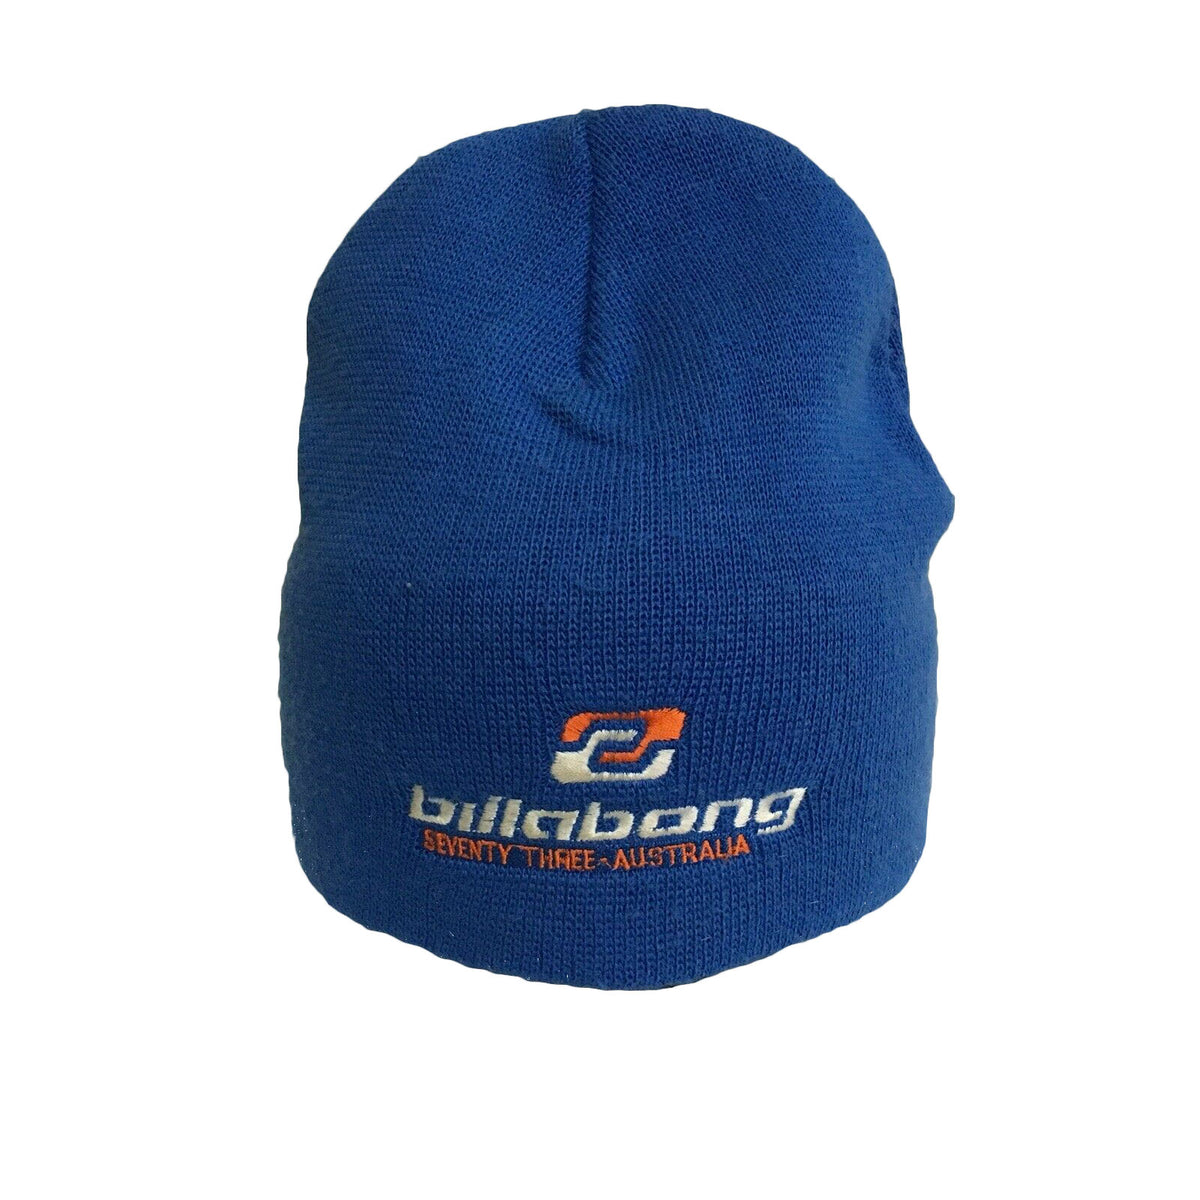 Billabong Surfwear Vintage 90's Mens Beanie